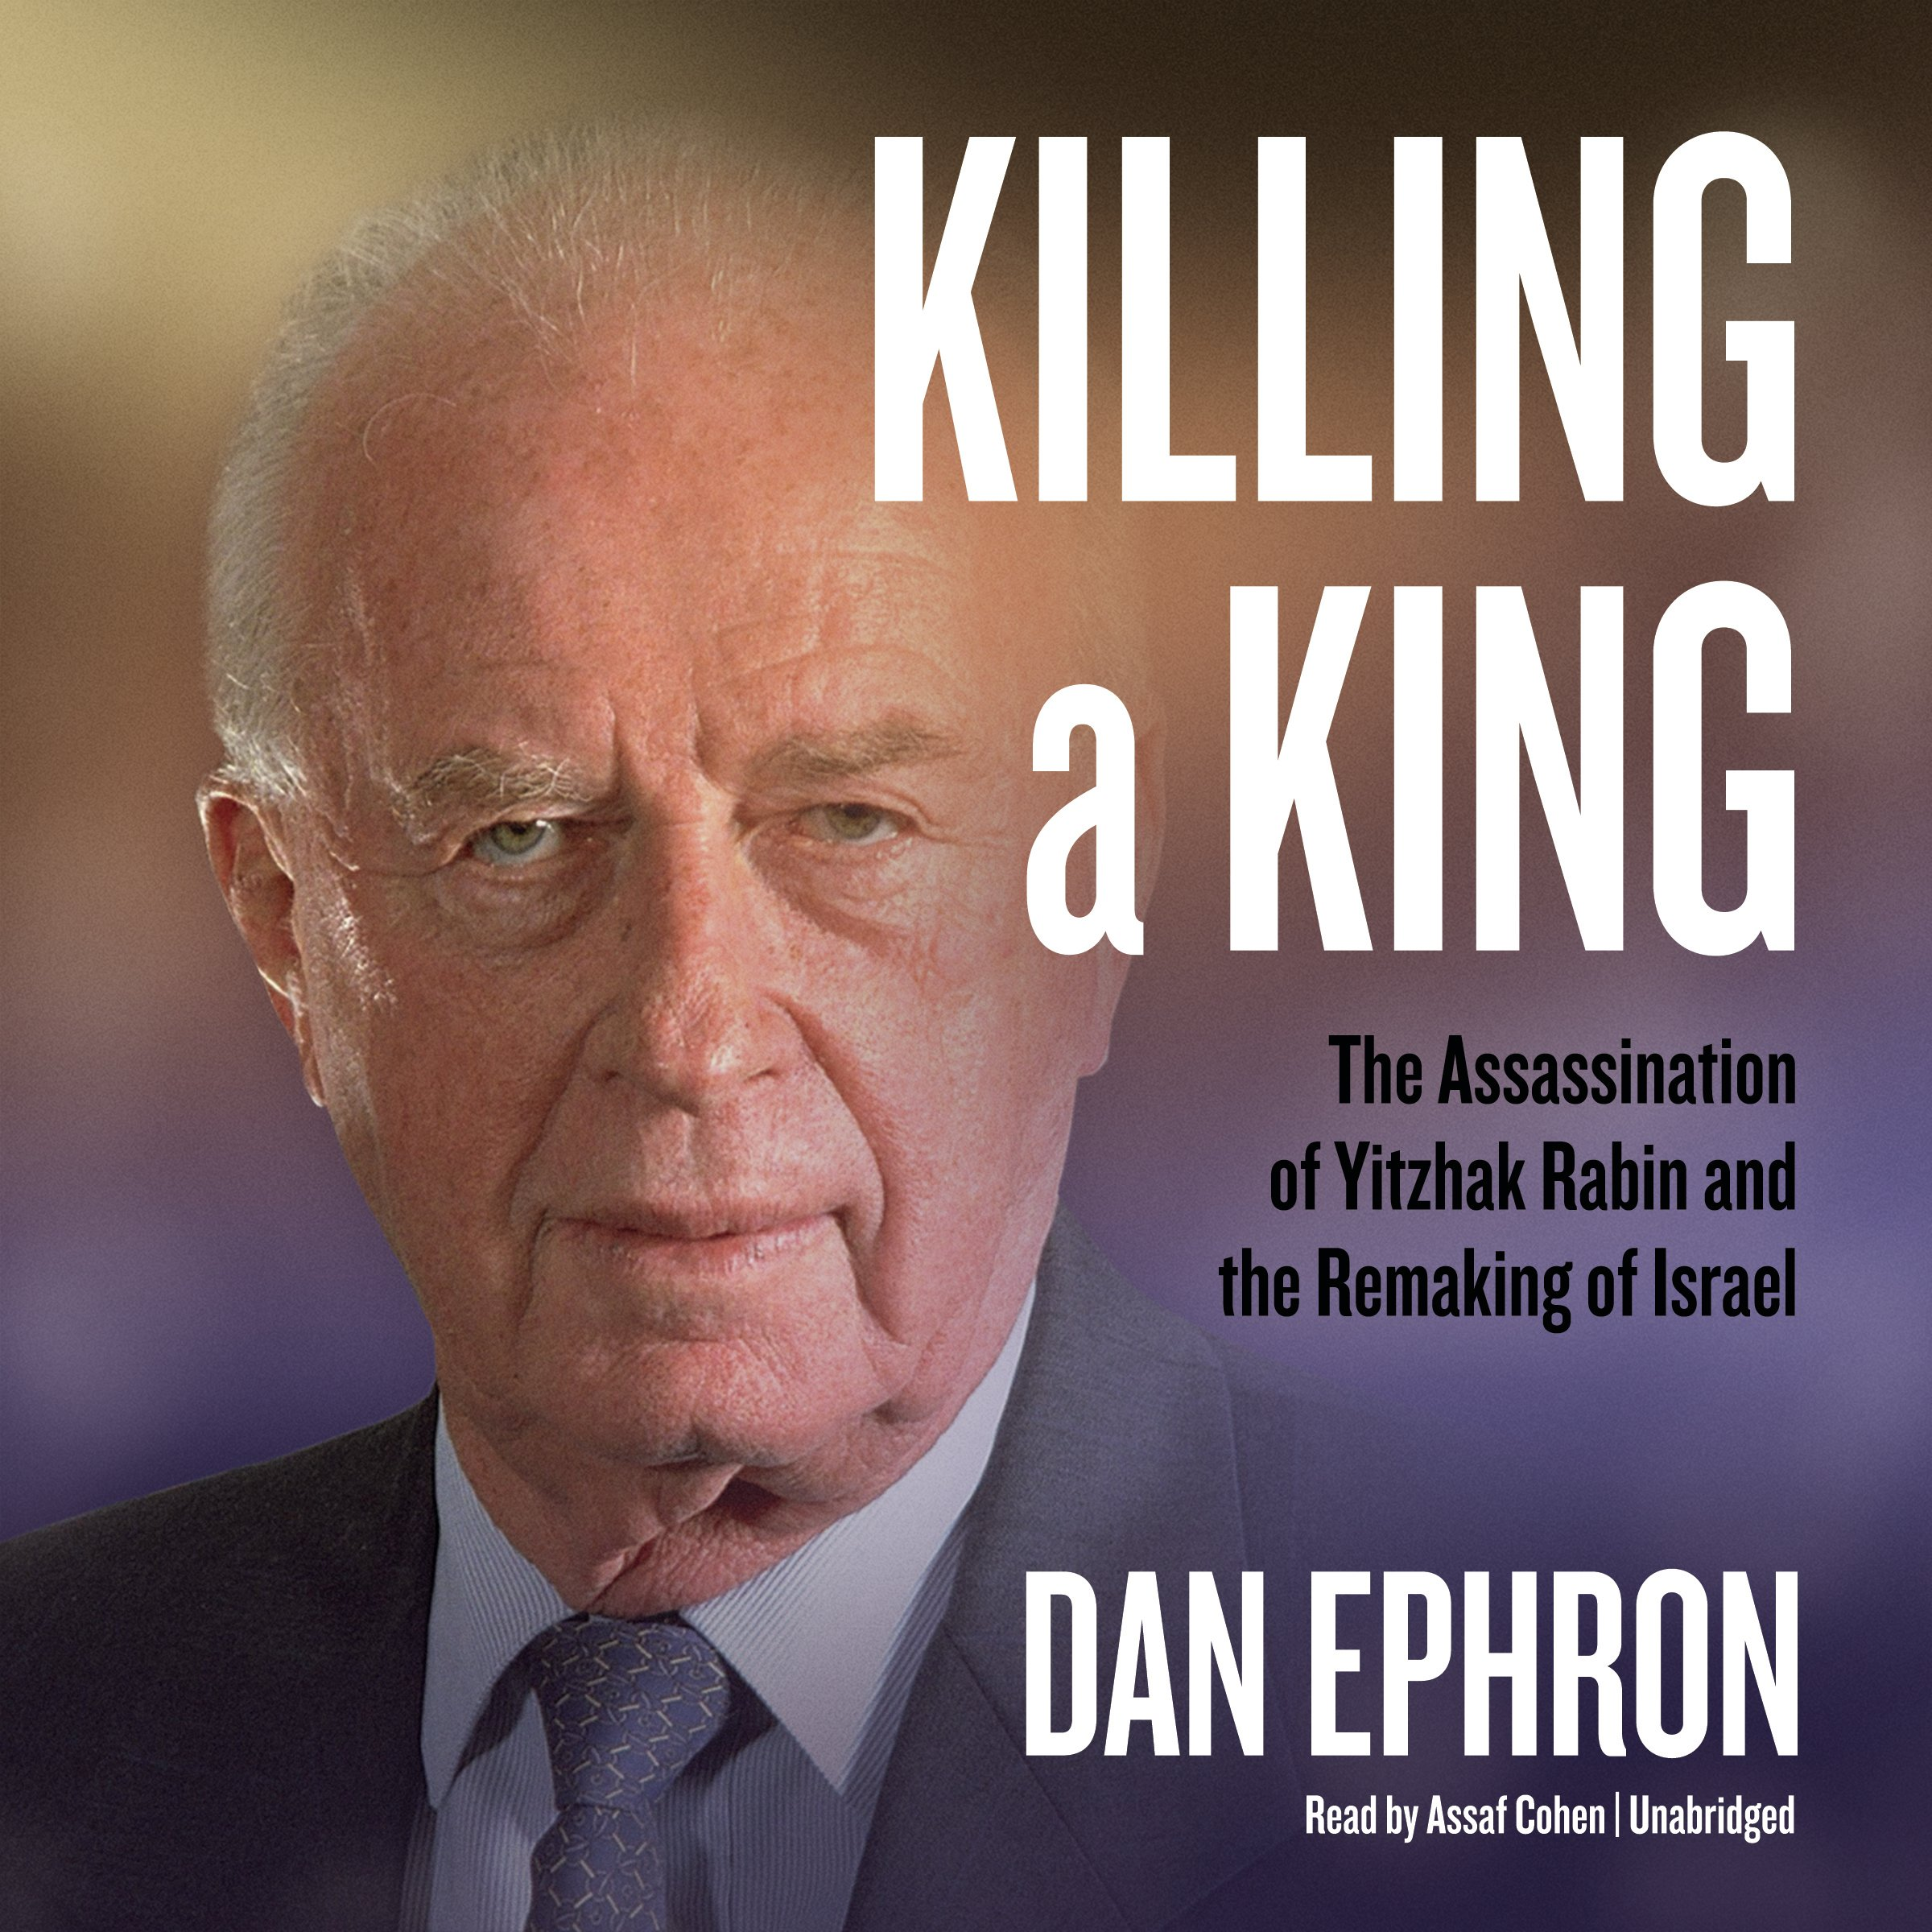 Killing a King: The Assassination of Yitzhak Rabin and the Remaking of Israel: Library Edition